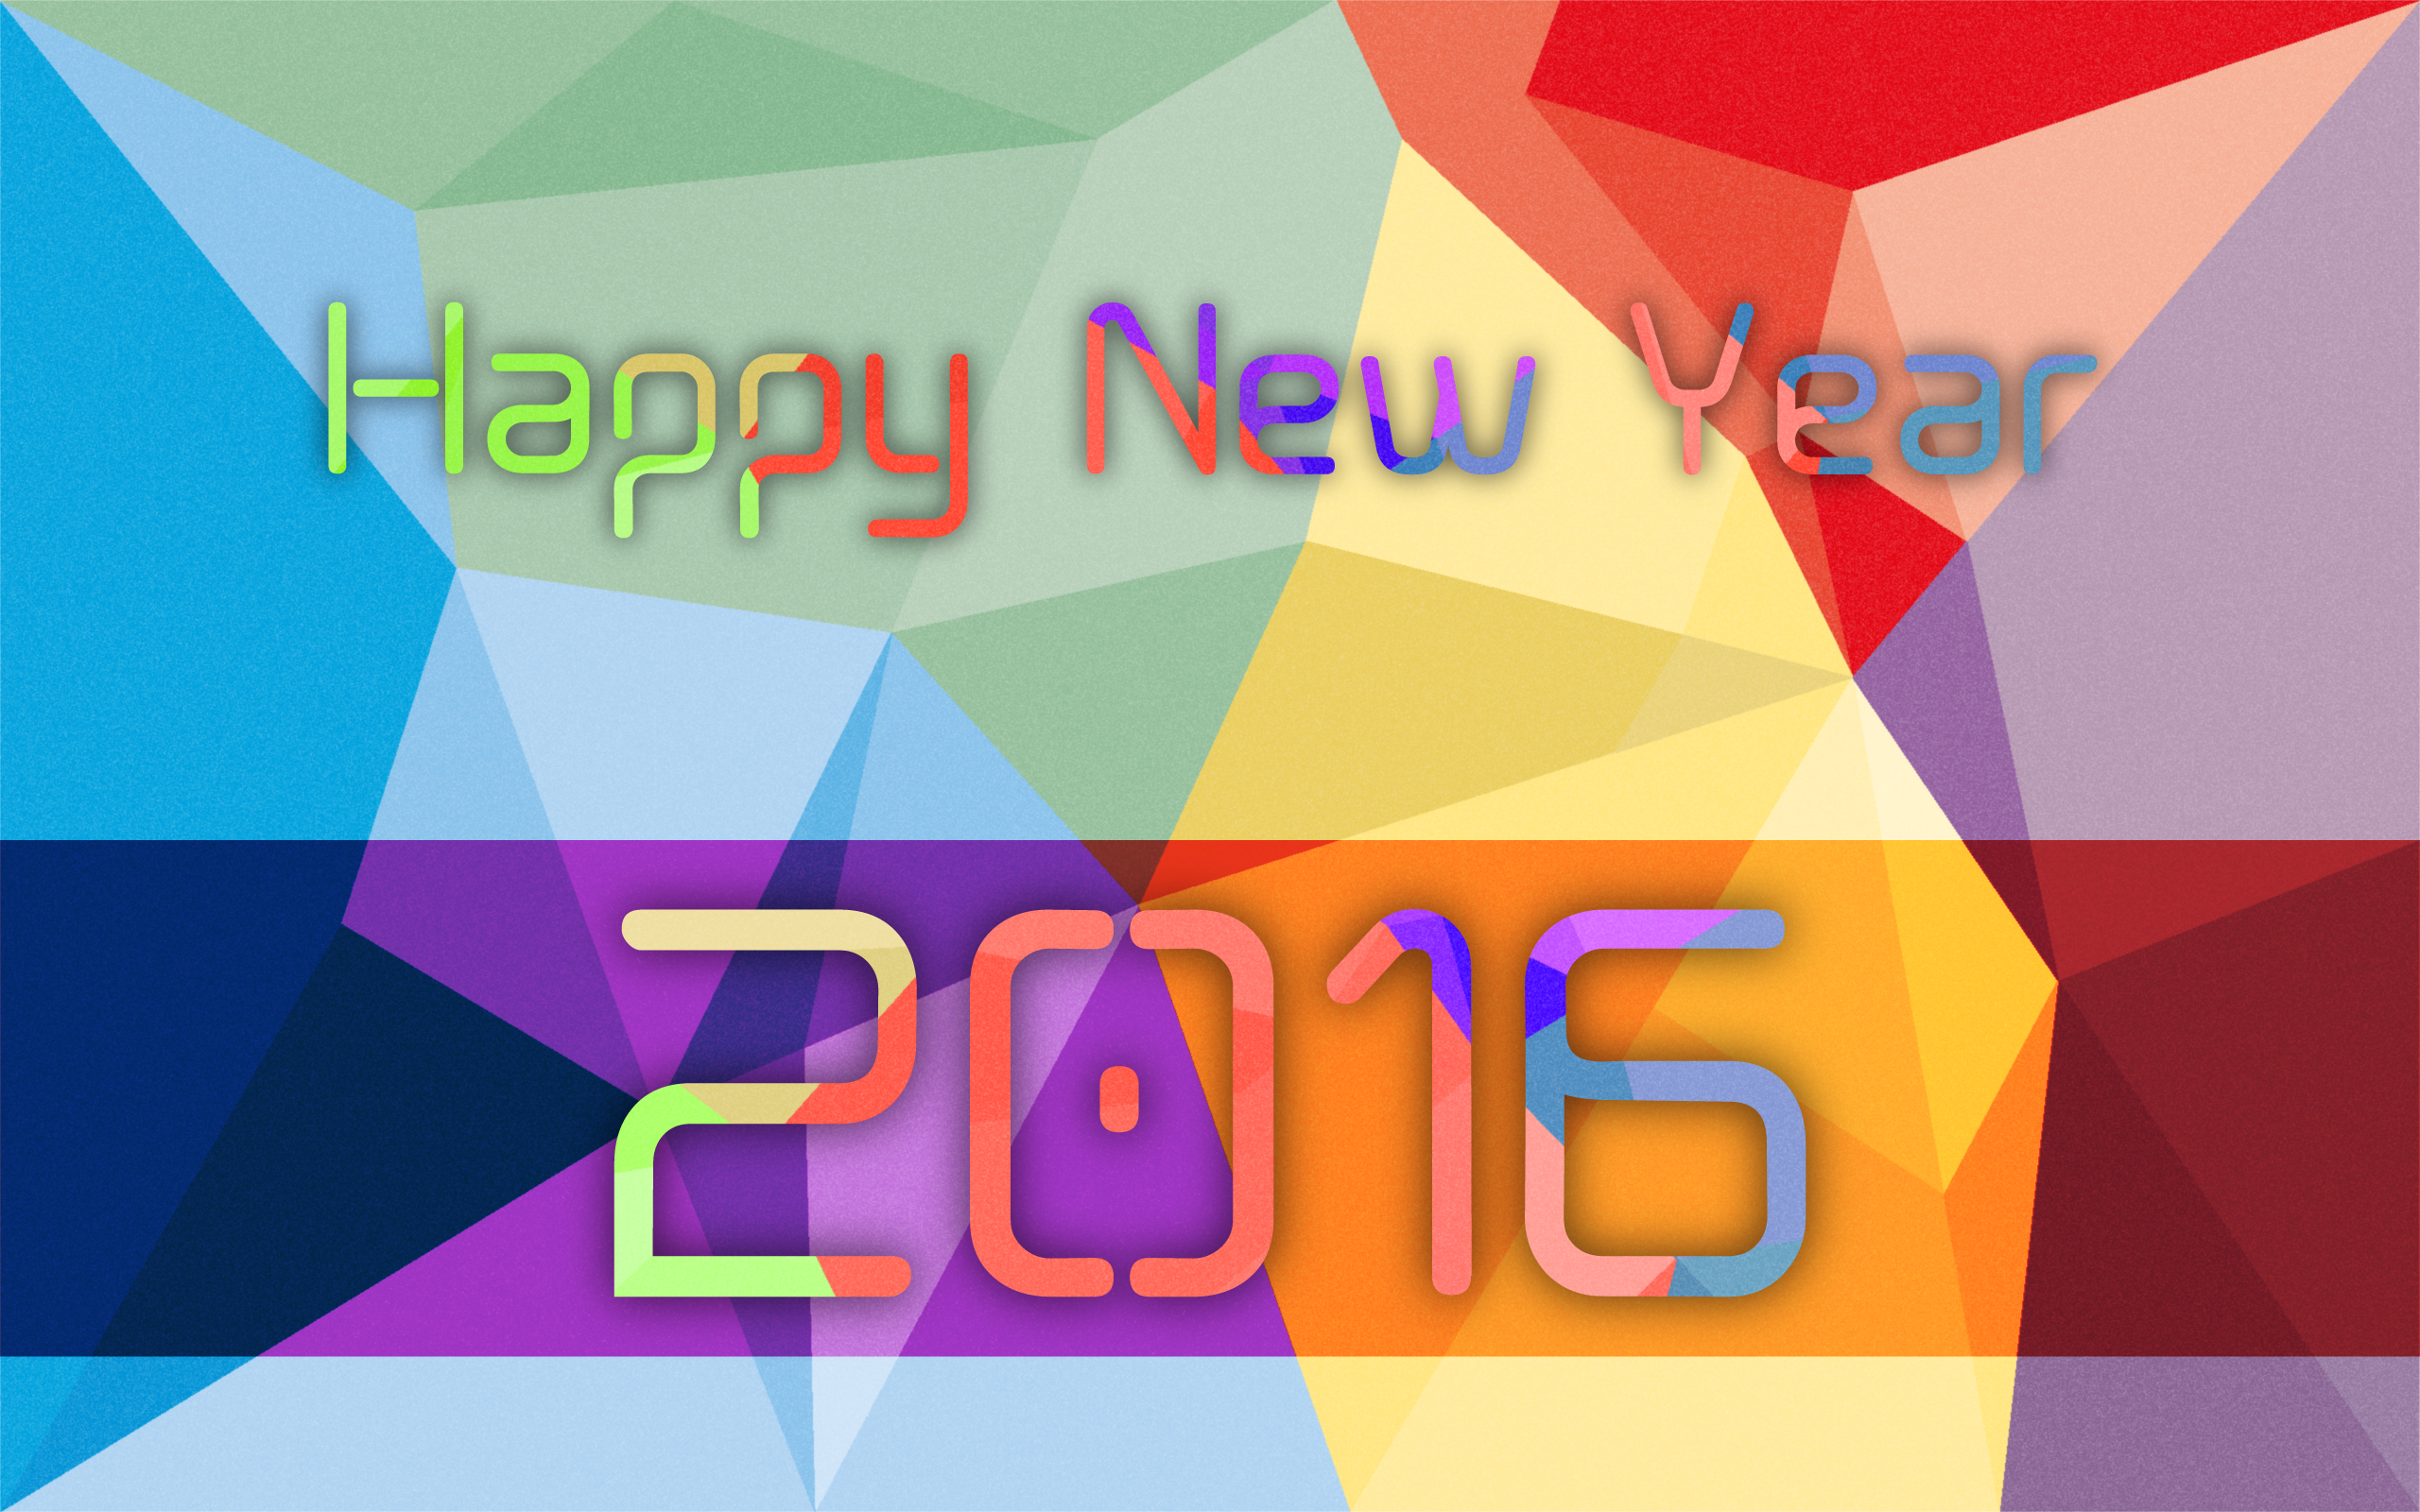 General 2560x1600 abstract New Year minimalism modern colorful vector